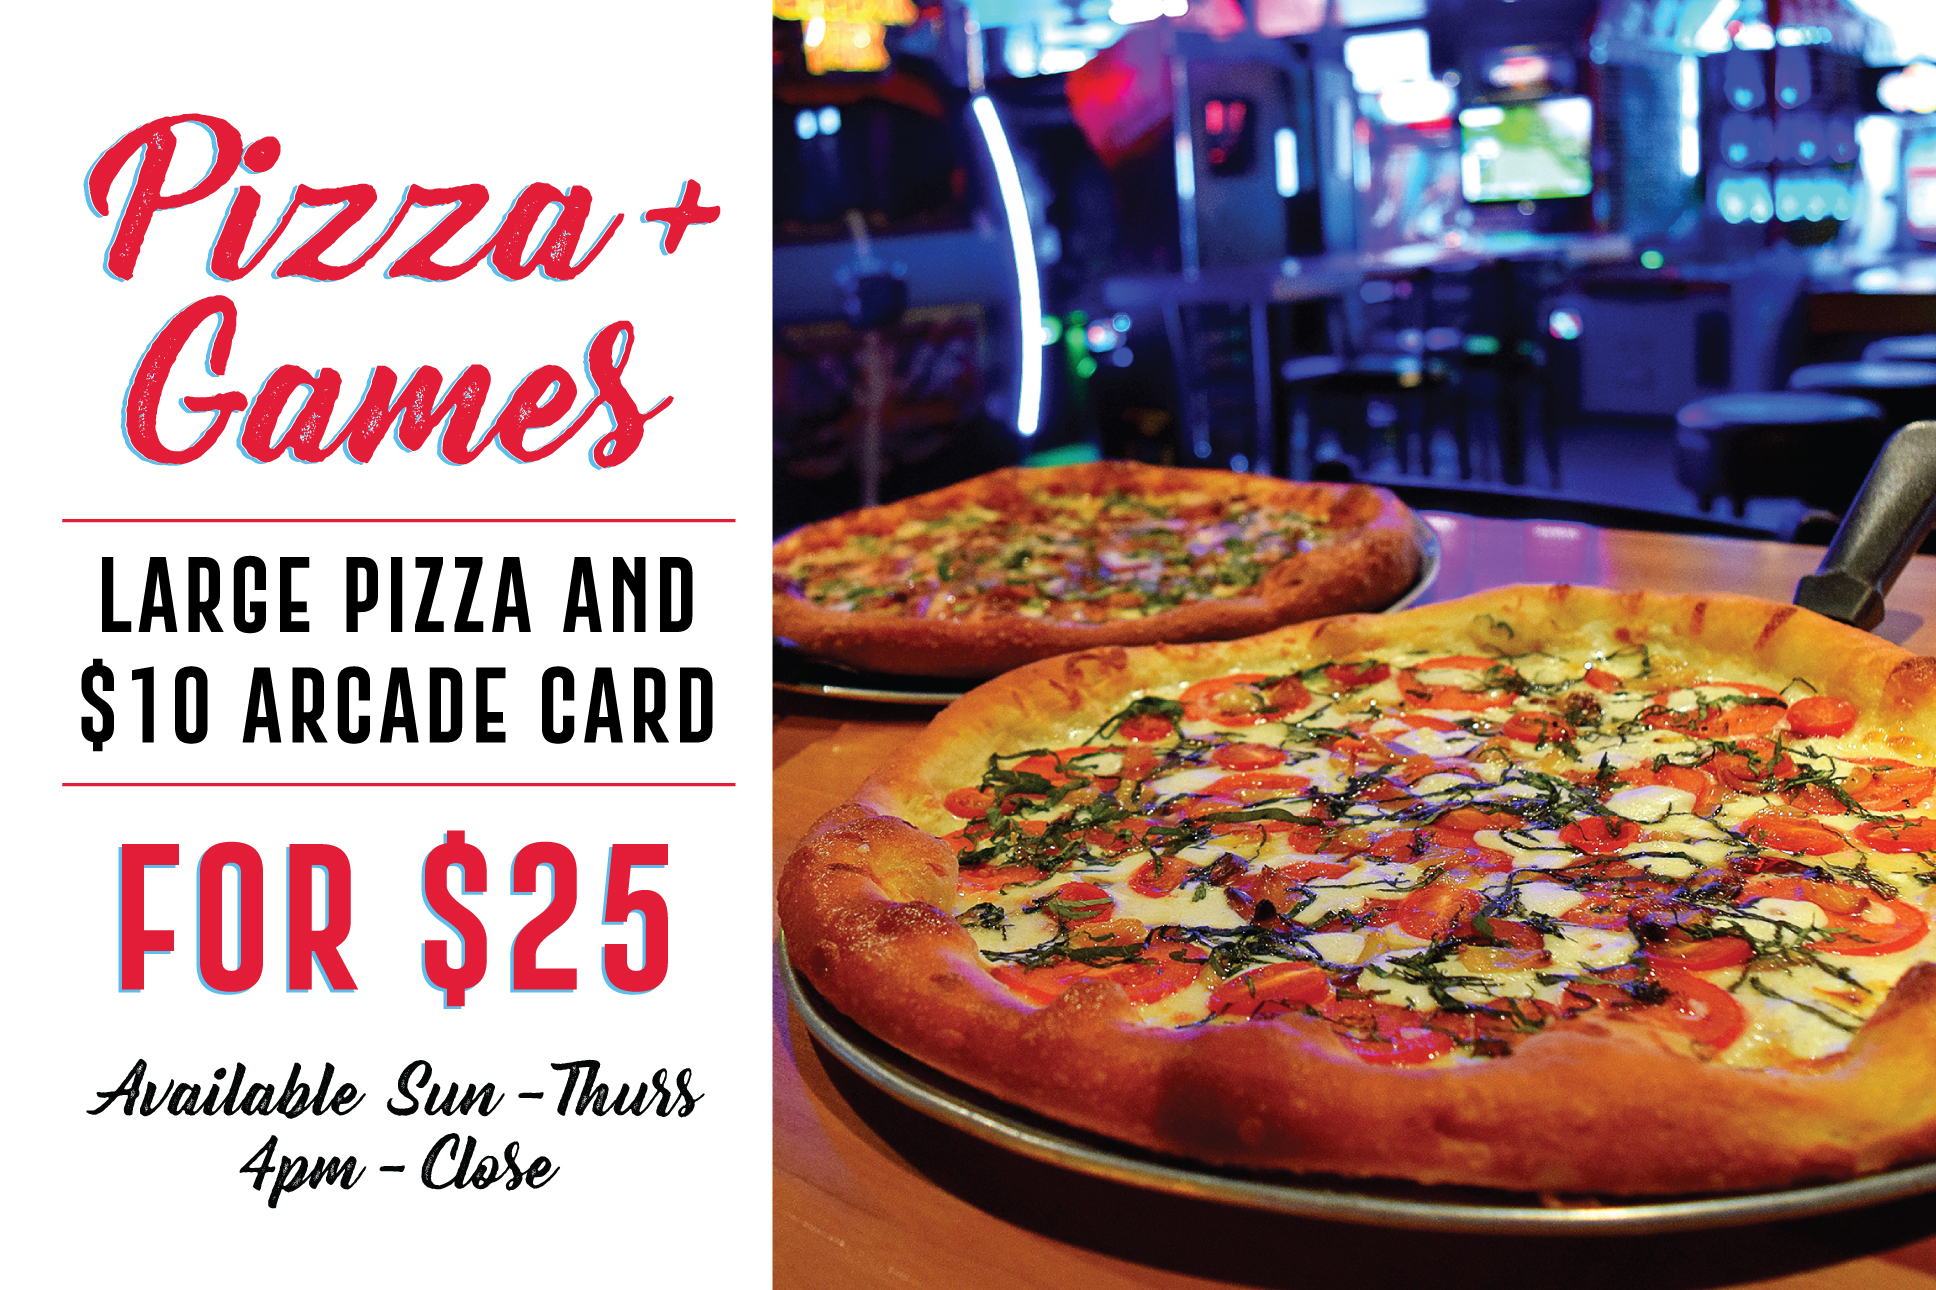 PIZZA + GAMES DEAL - From Sunday to Thursday come in between 4pm-close and get a pizza and a $10 gift card for only $25!